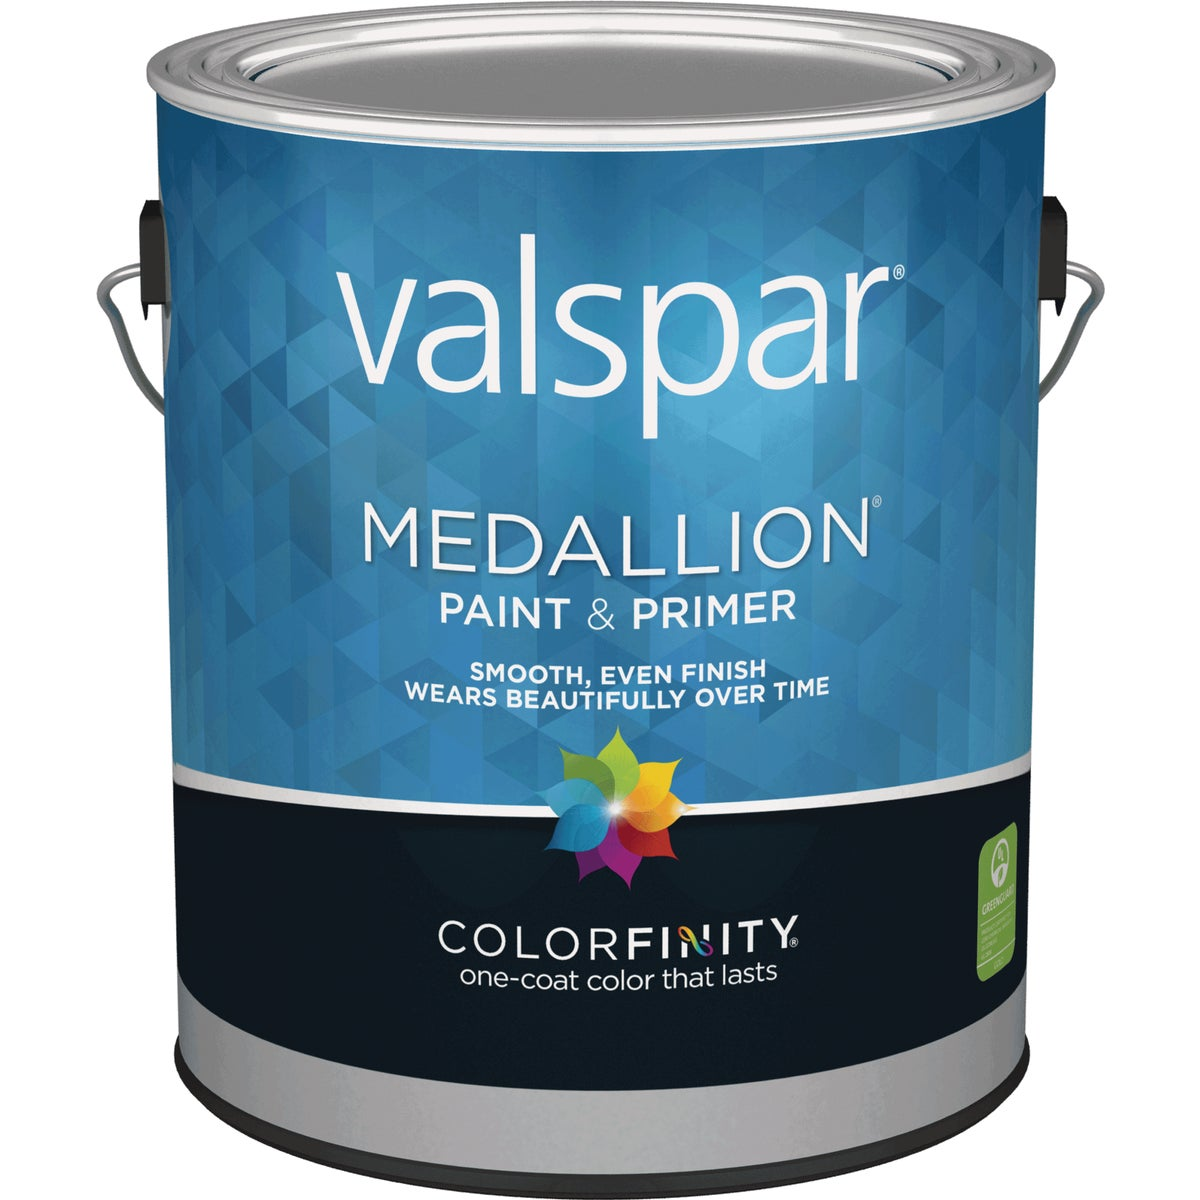 INT S/G WHITE PAINT - 027.0002400.007 by Valspar Corp